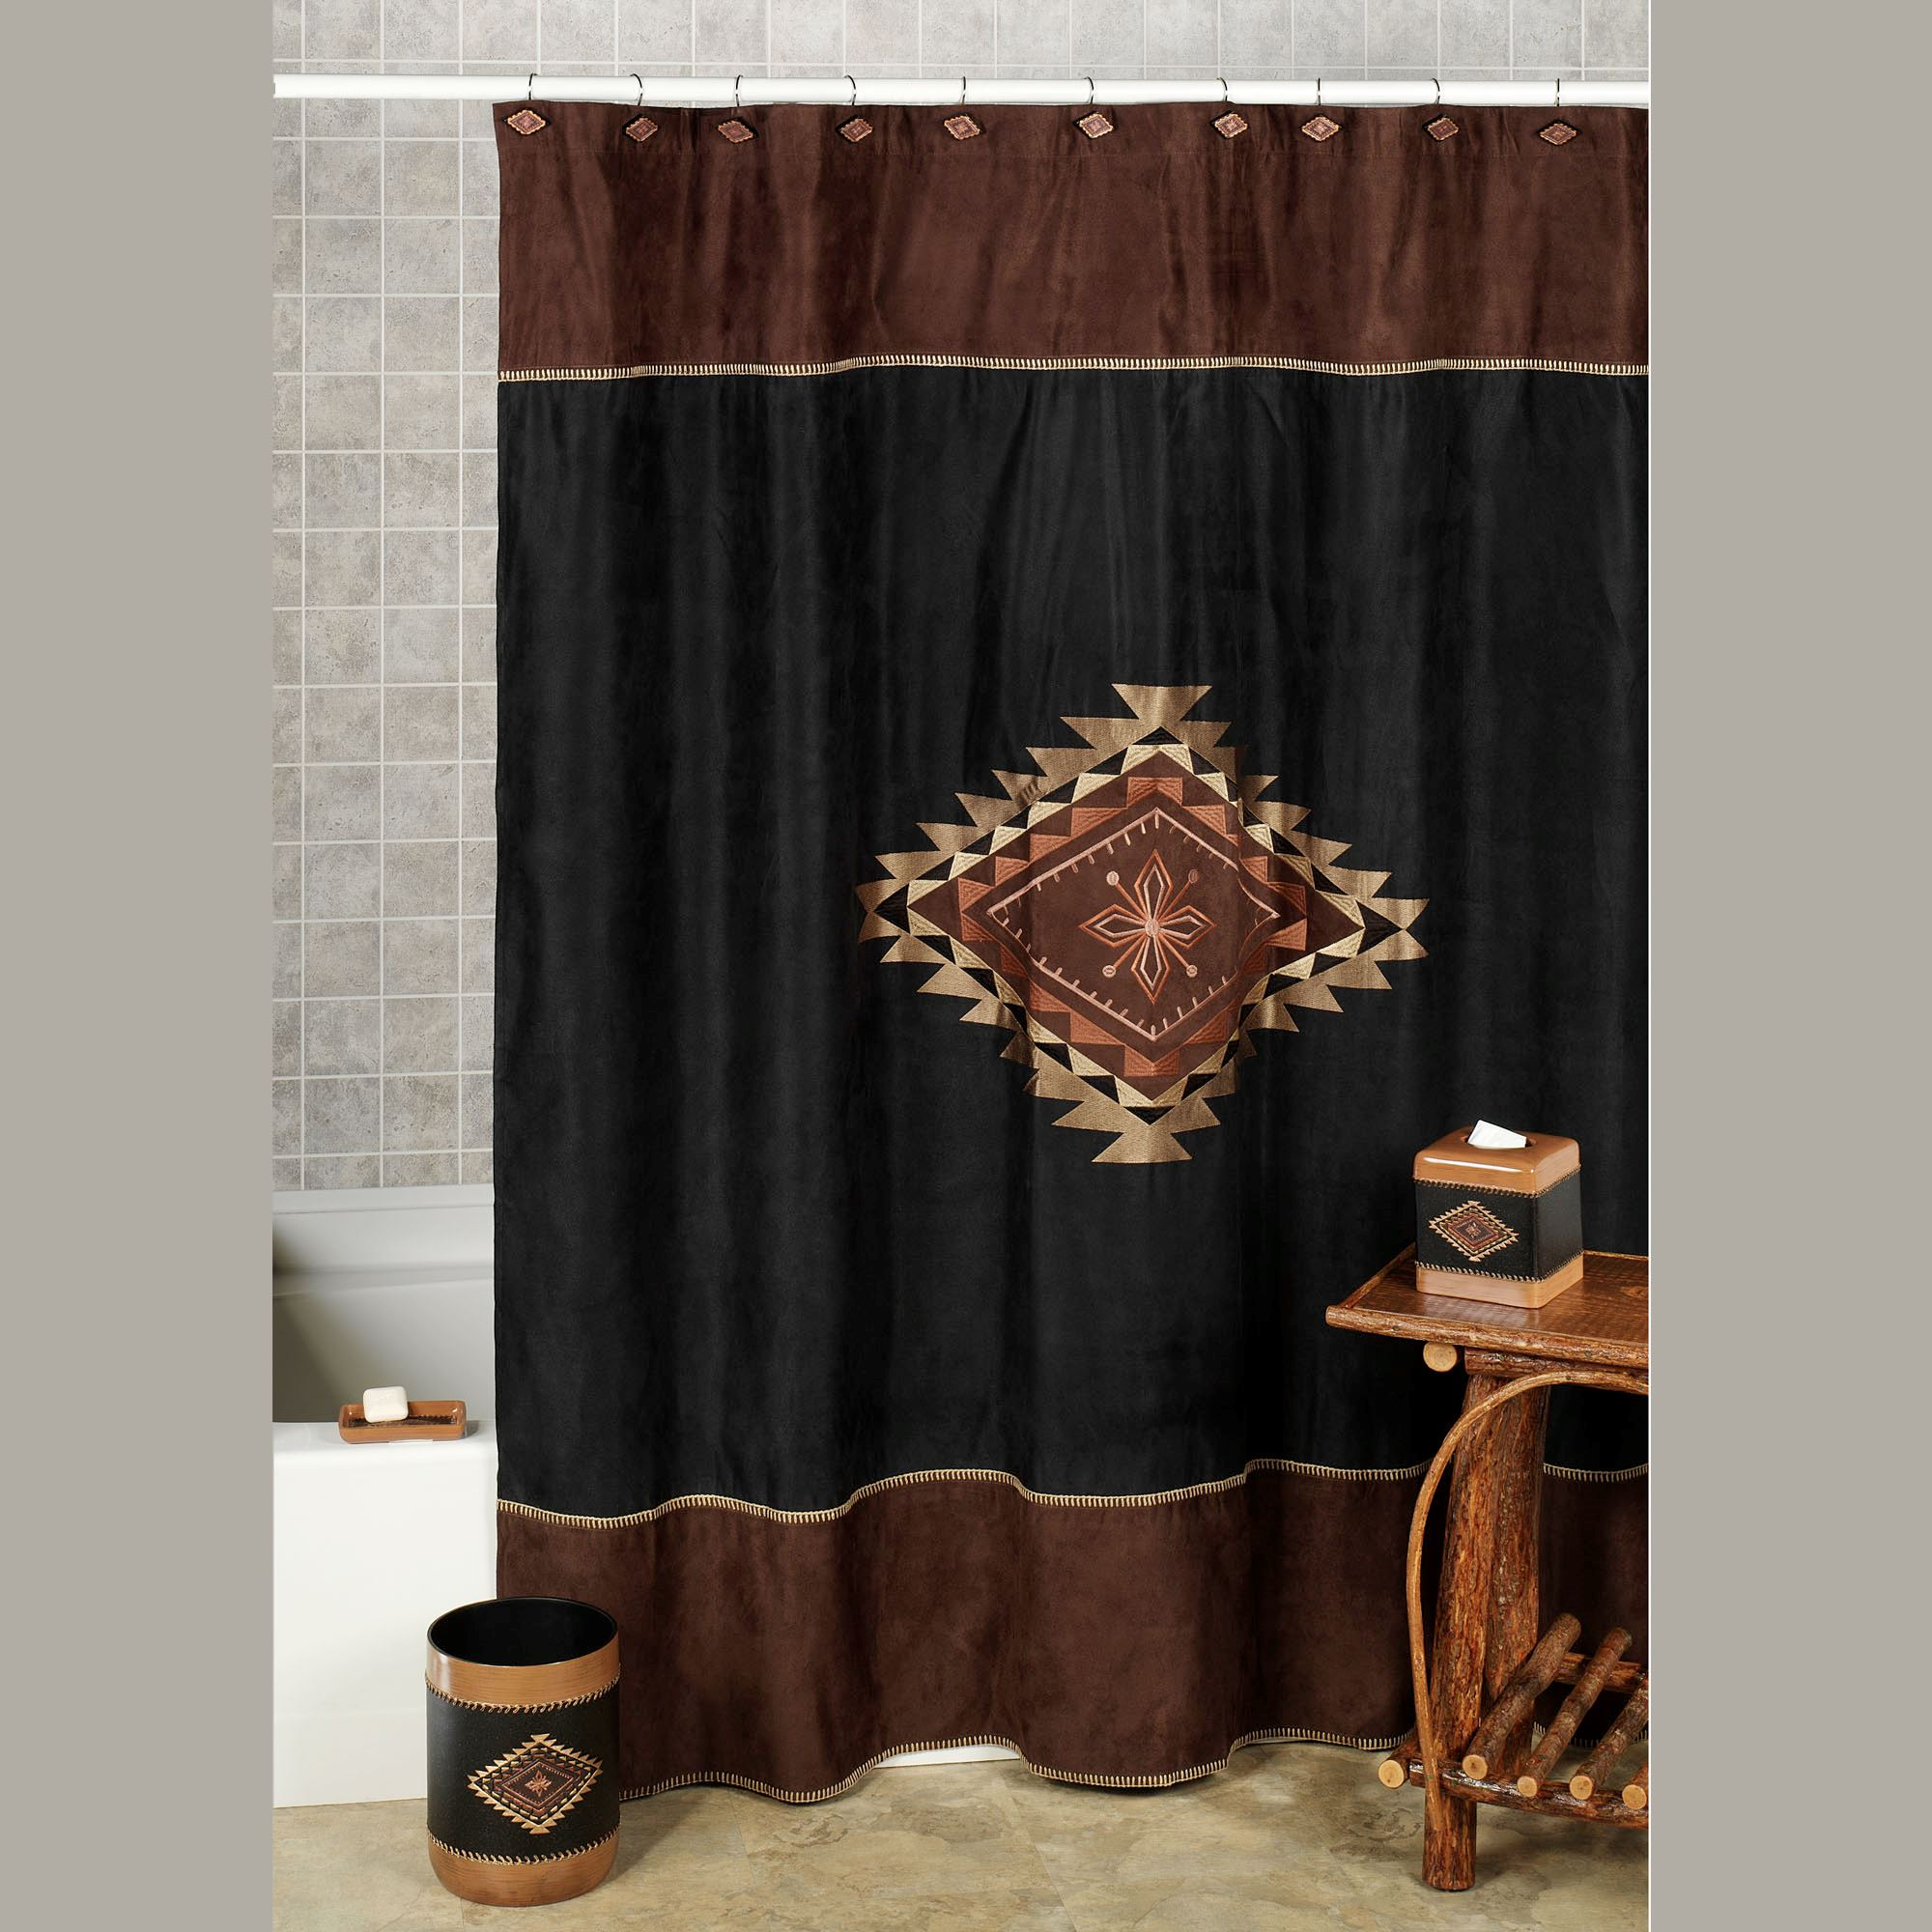 barn curtain swag sale window shower double home curtains pottery fabric to southwestern